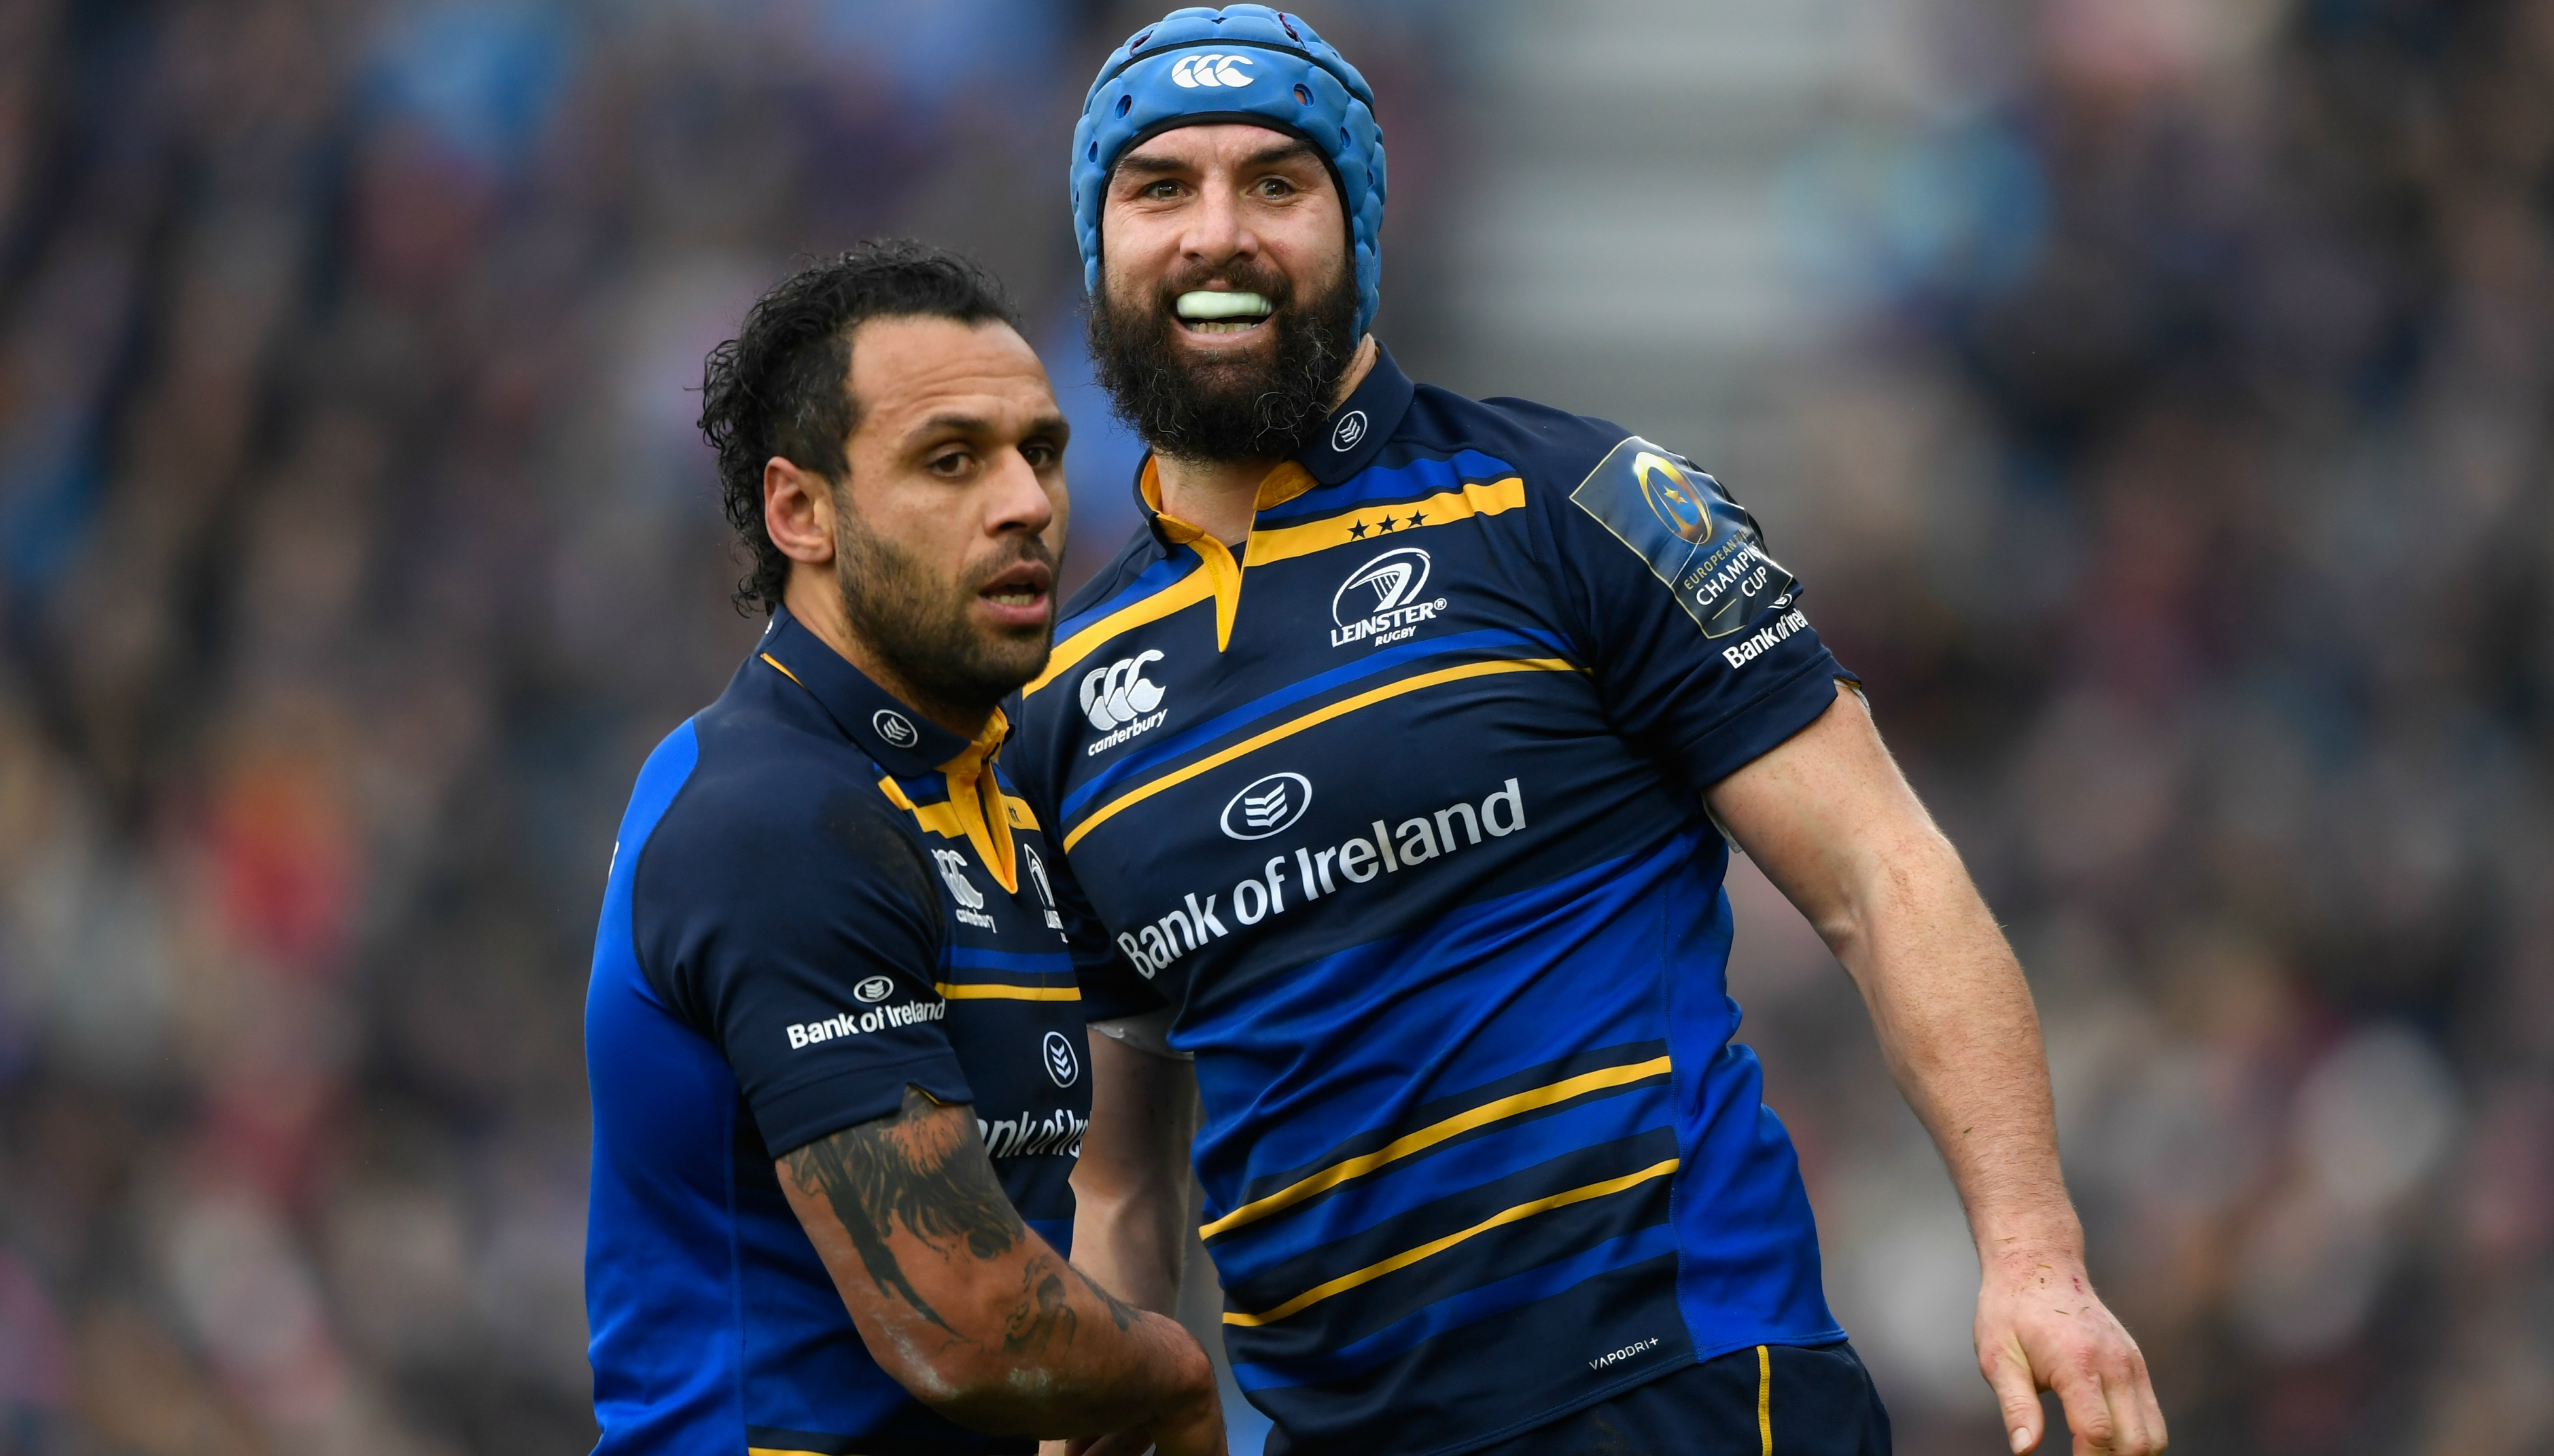 Leinster and Racing dominate European Player of the Year shortlist